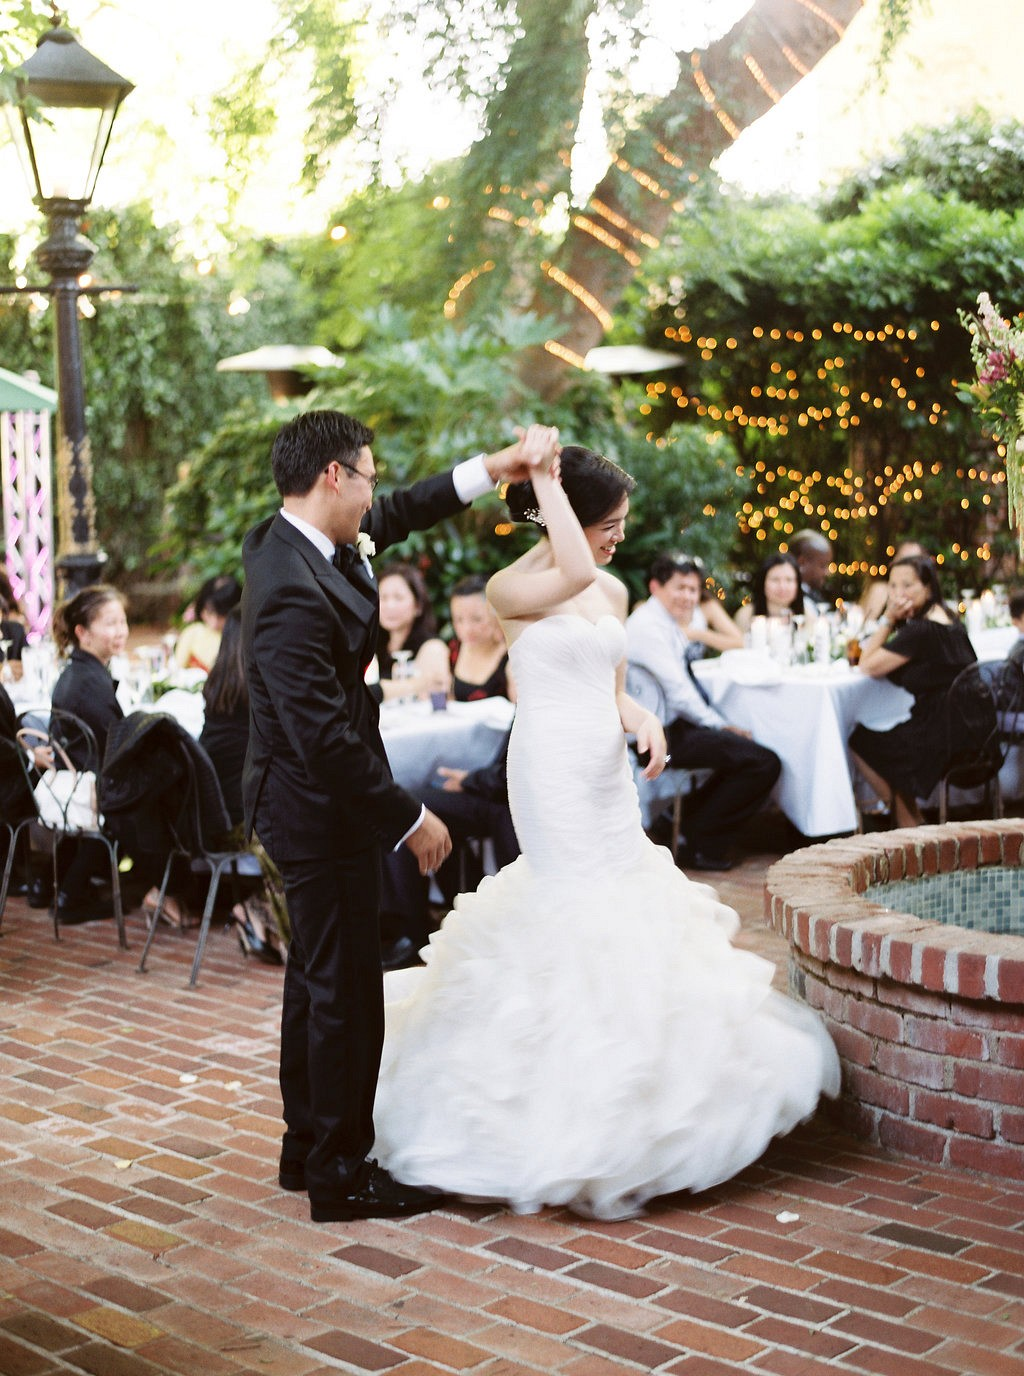 Yolanda and George's Garden Wedding with Eucalyptus Gardland